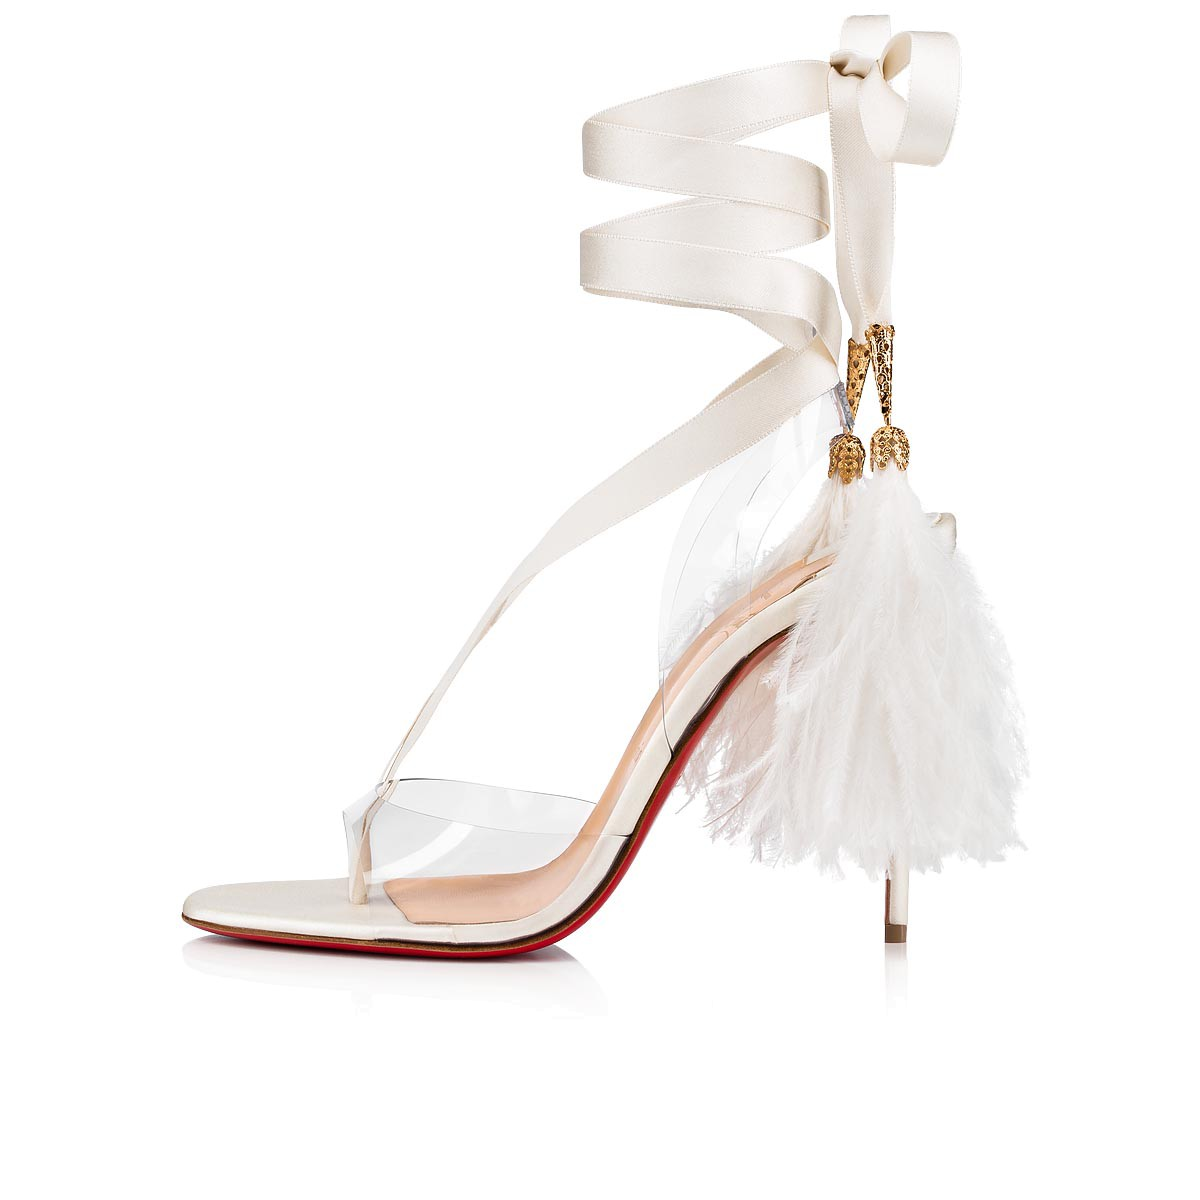 7c6b1f82ae9 Marie Edwina 100 Version off white PVC, Satin crepe and Ostrich feathers -  Women Shoes - Christian Louboutin